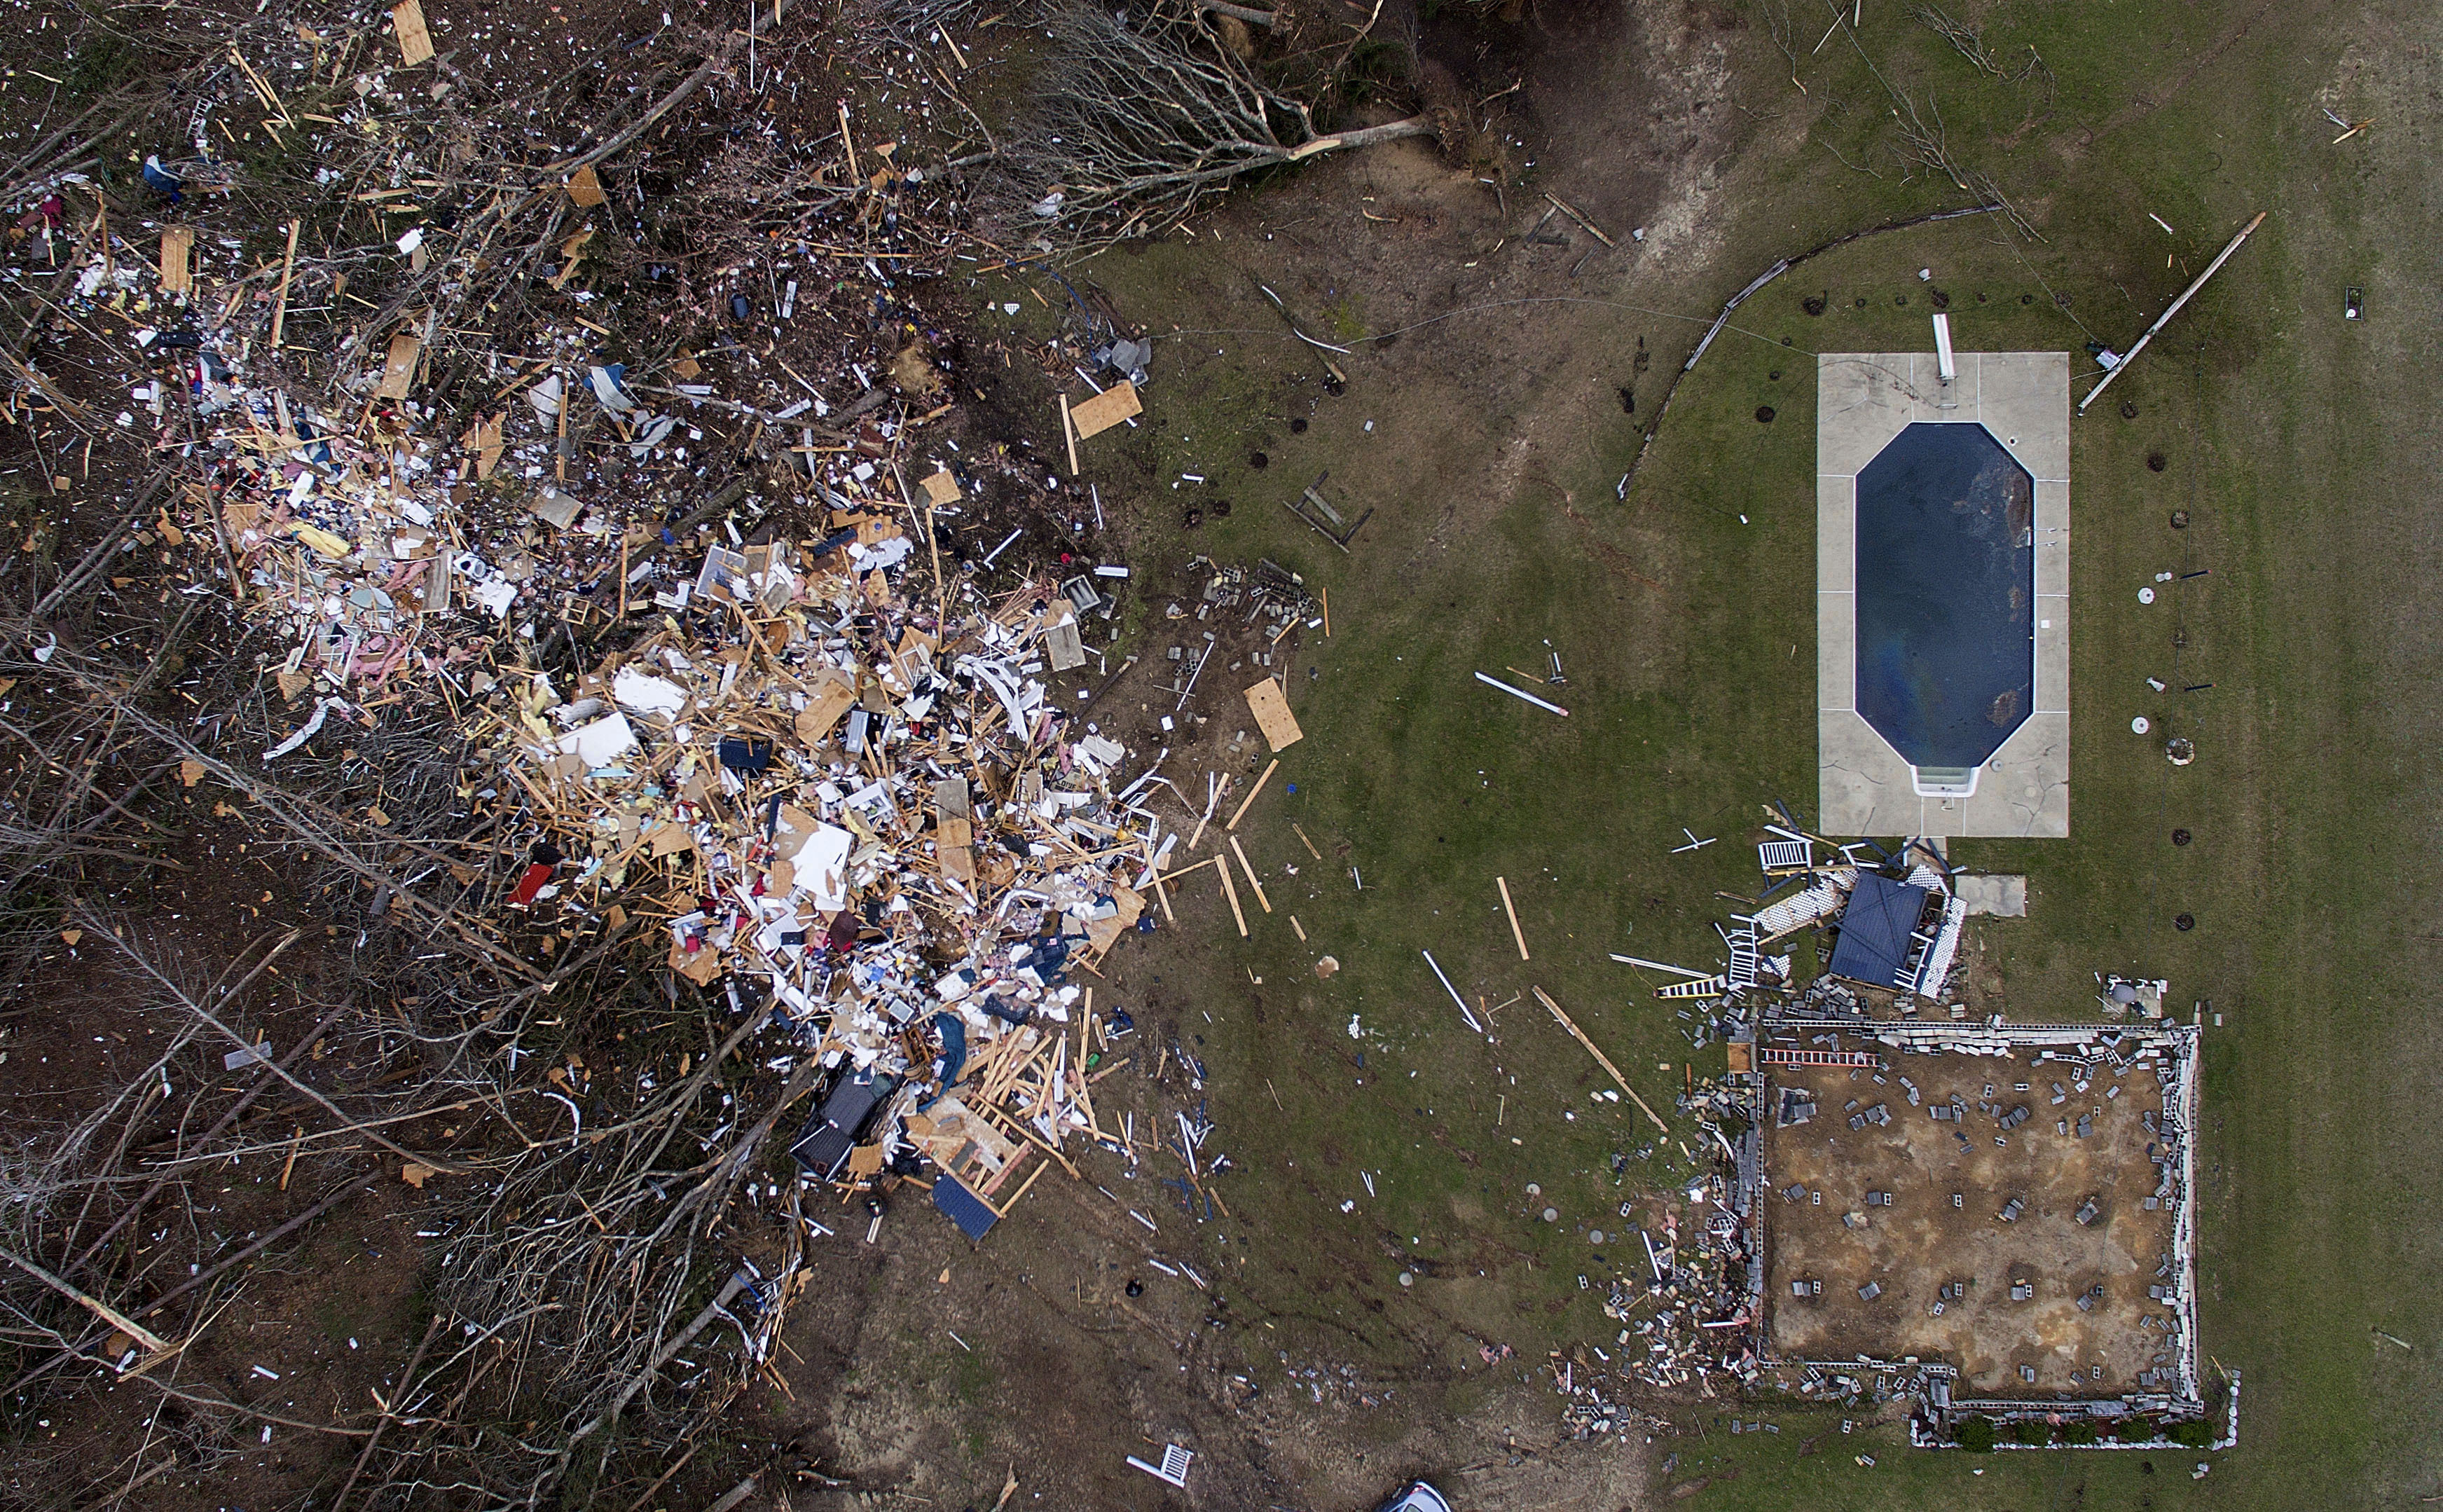 Tornado victims pick up the pieces in Alabama after